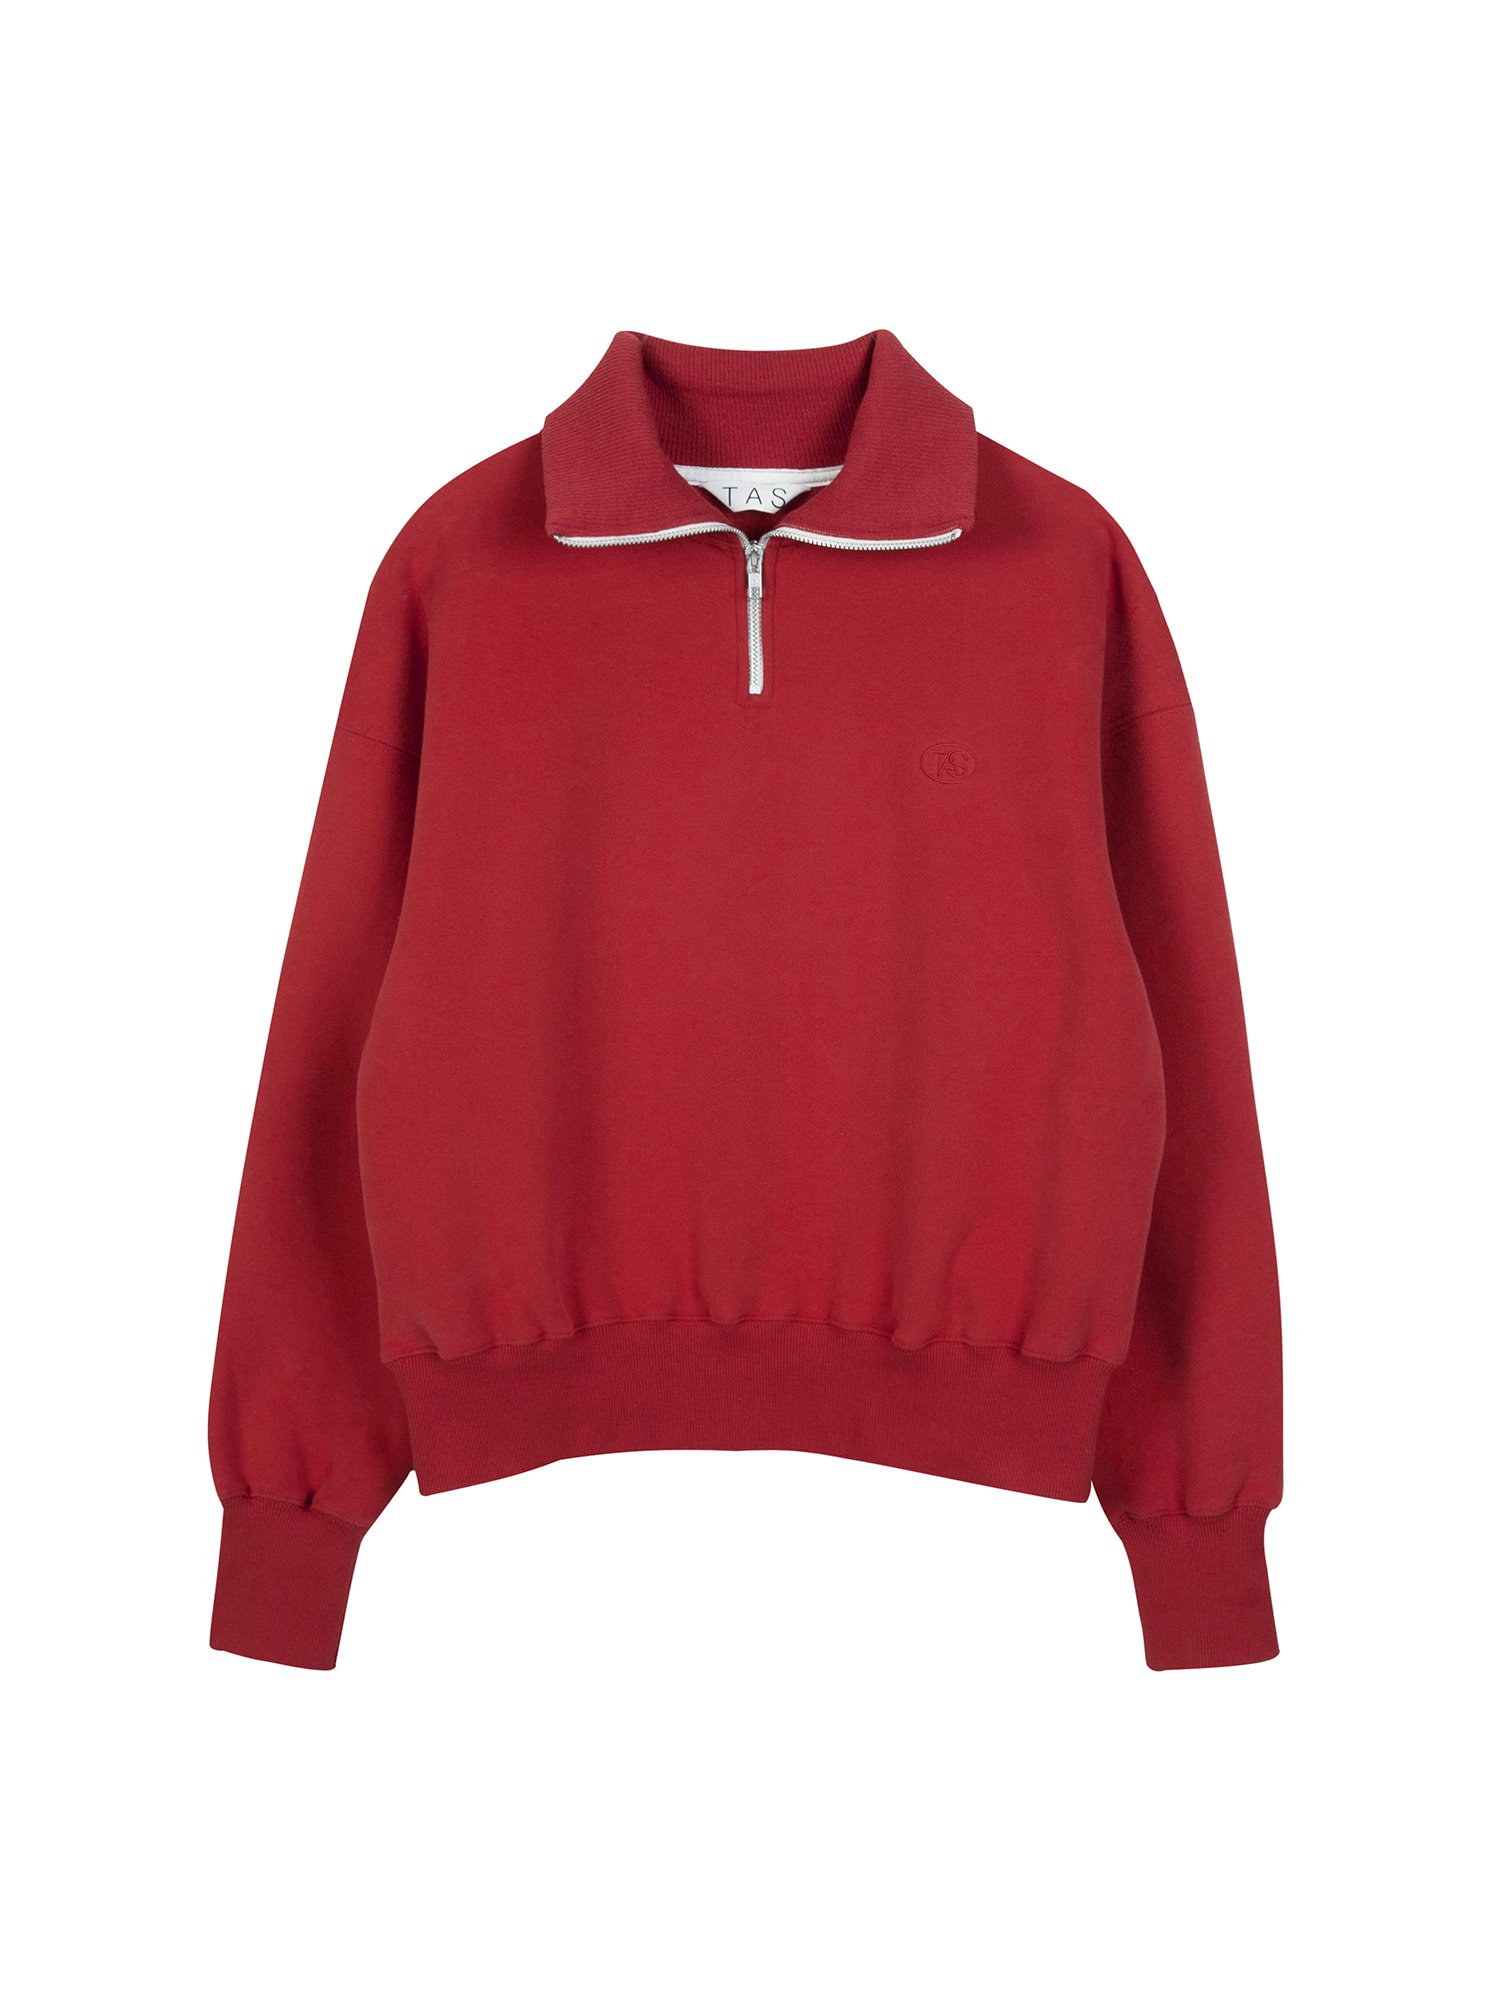 tas zip up sweat shirt (Red)